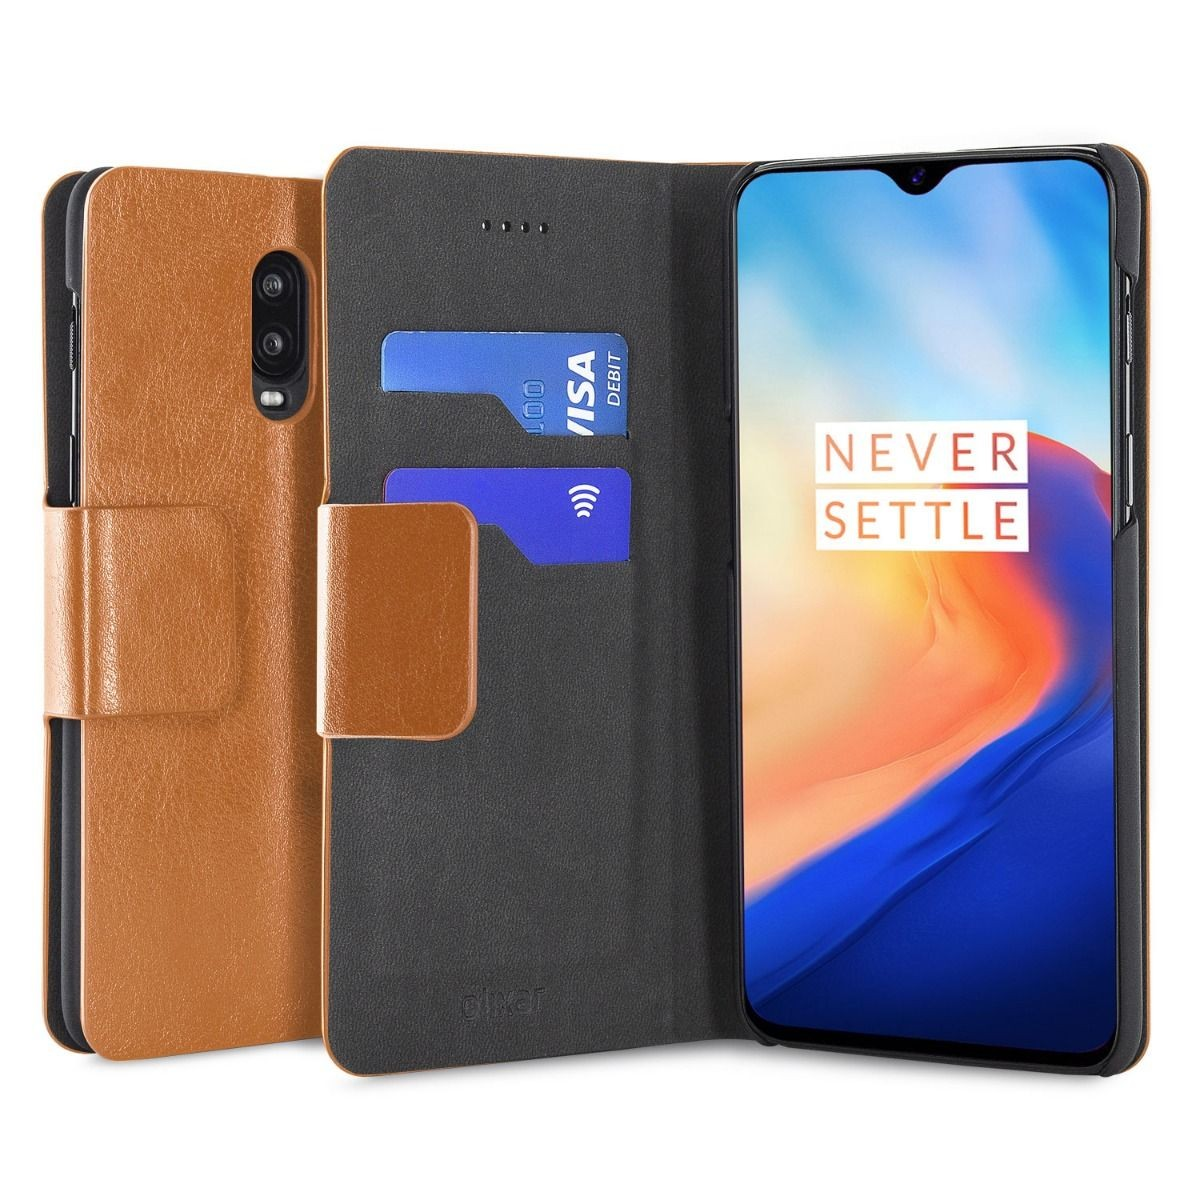 OnePlus 6T Olixar Leather-style wallet stand case